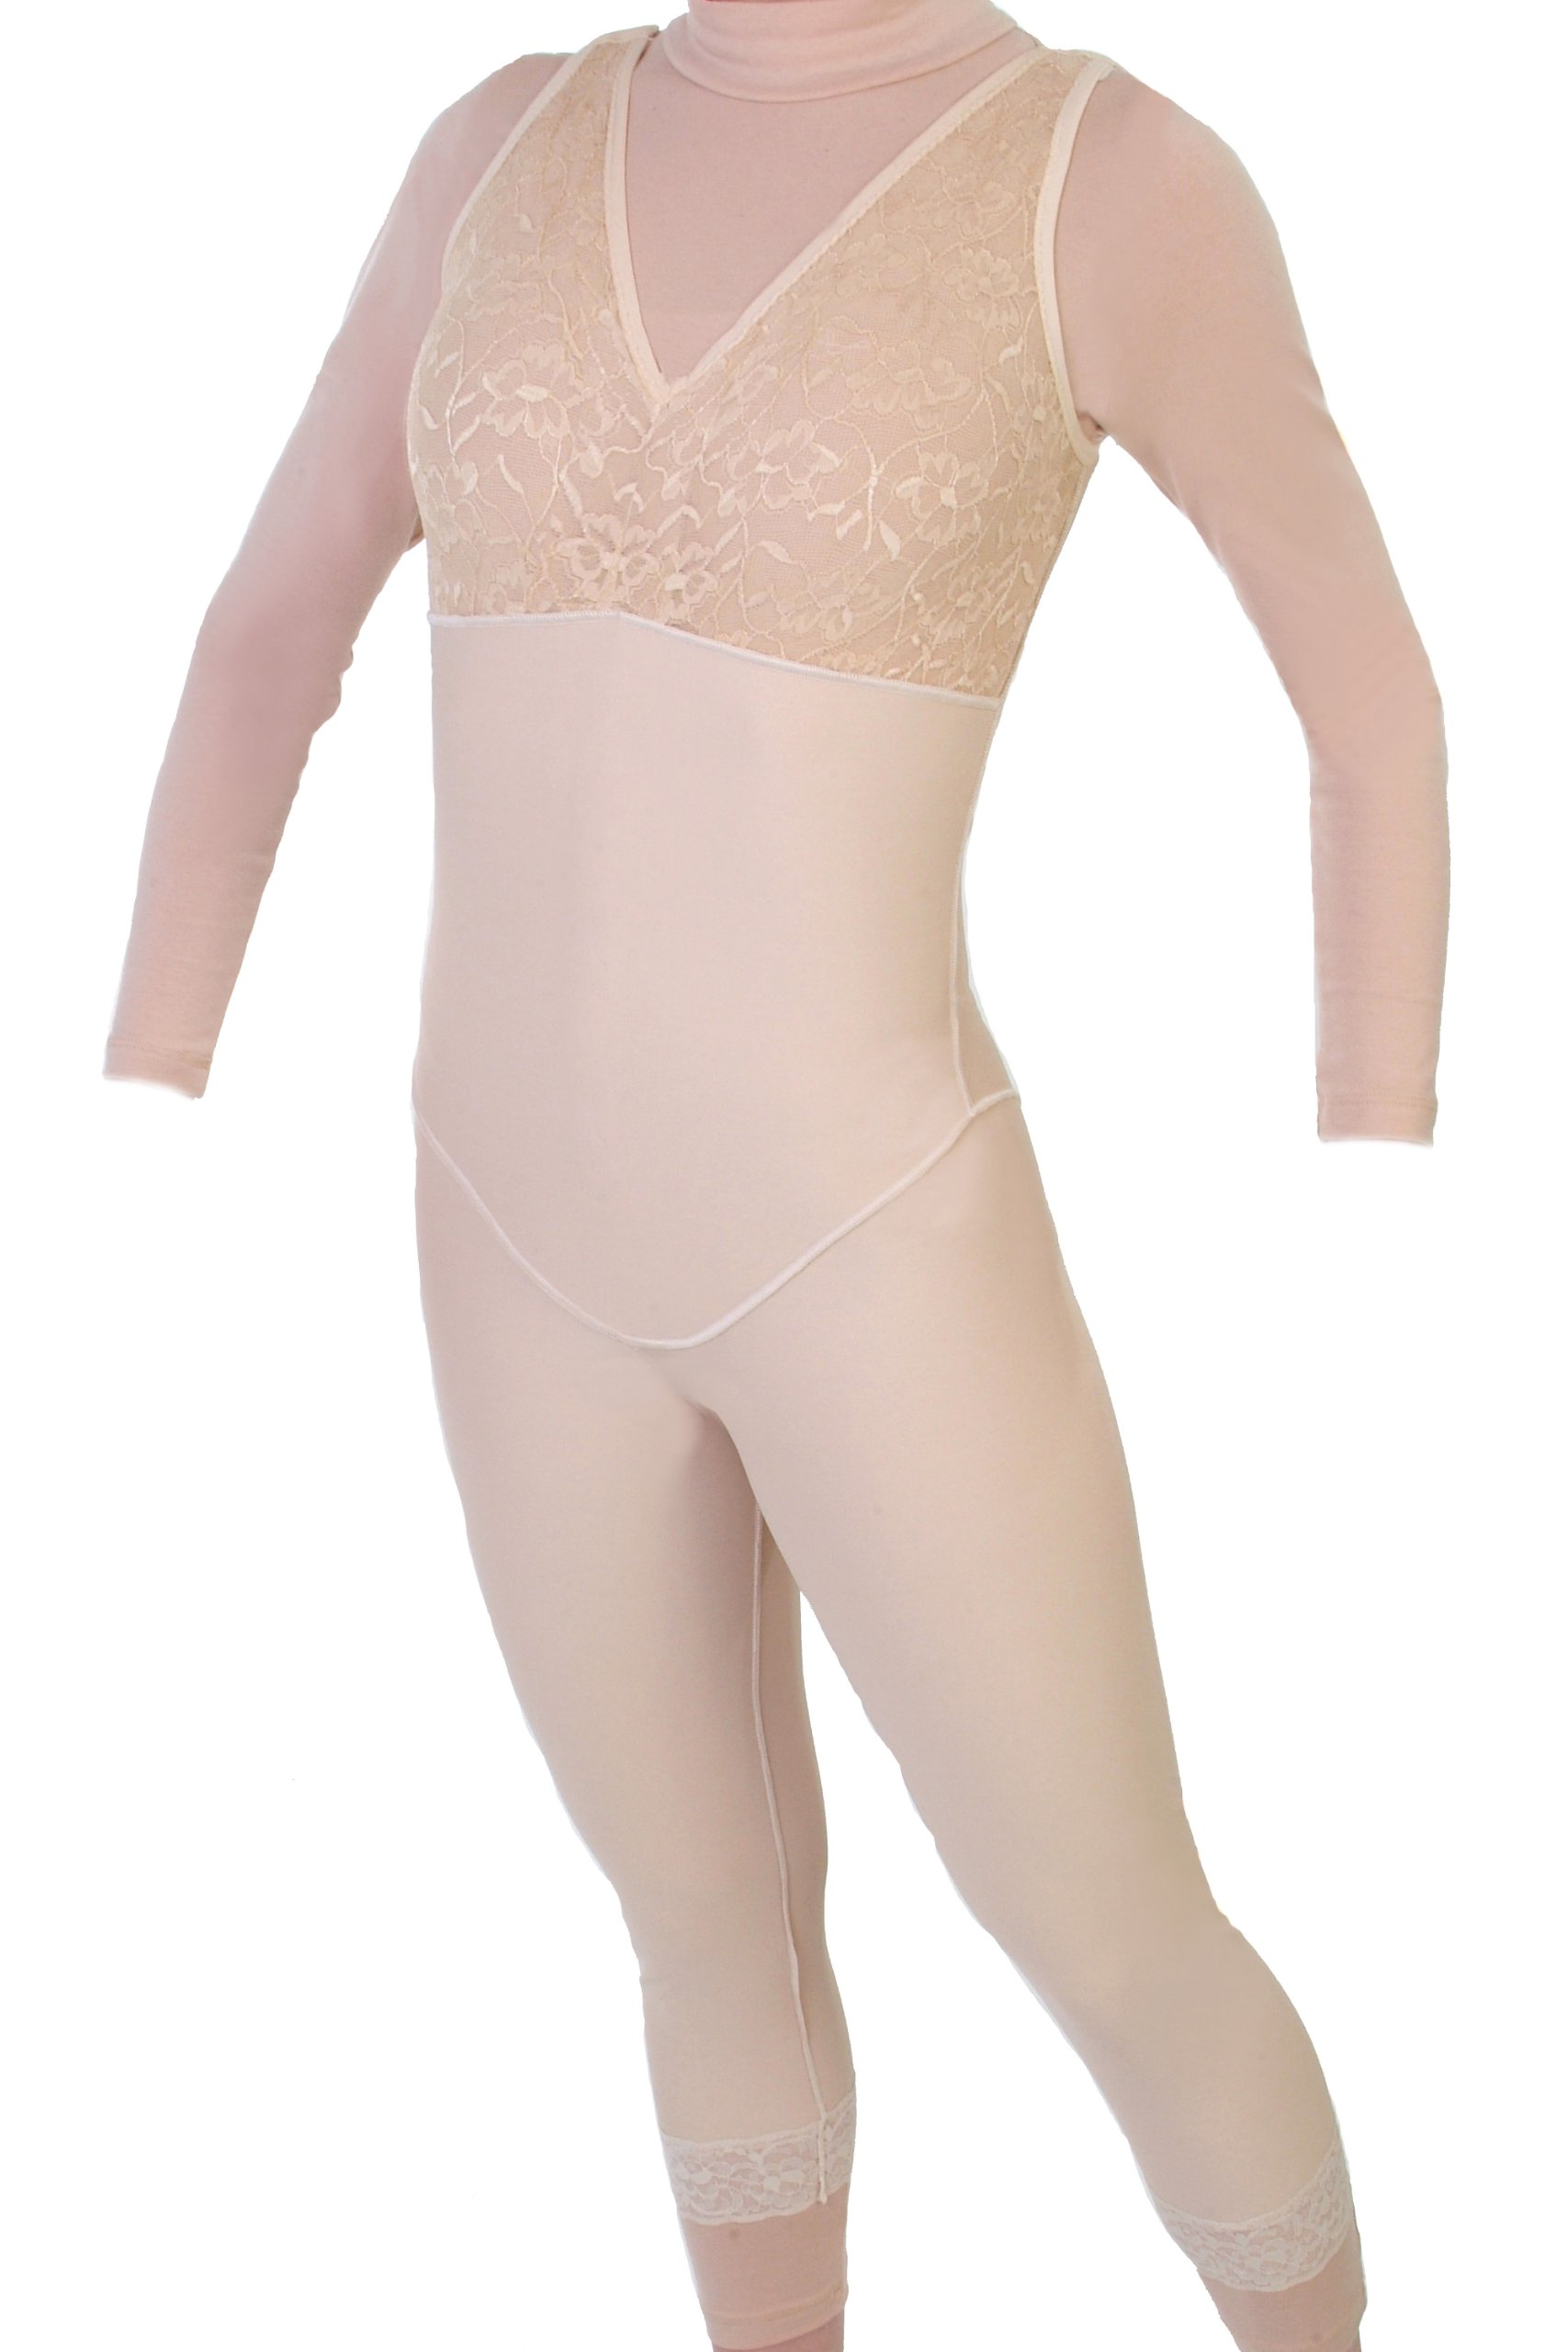 Style 28NZ - Mid Calf Body Shaper Without Zippers by Contour | Compression Garments | ContourMD (X-Small, Beige)